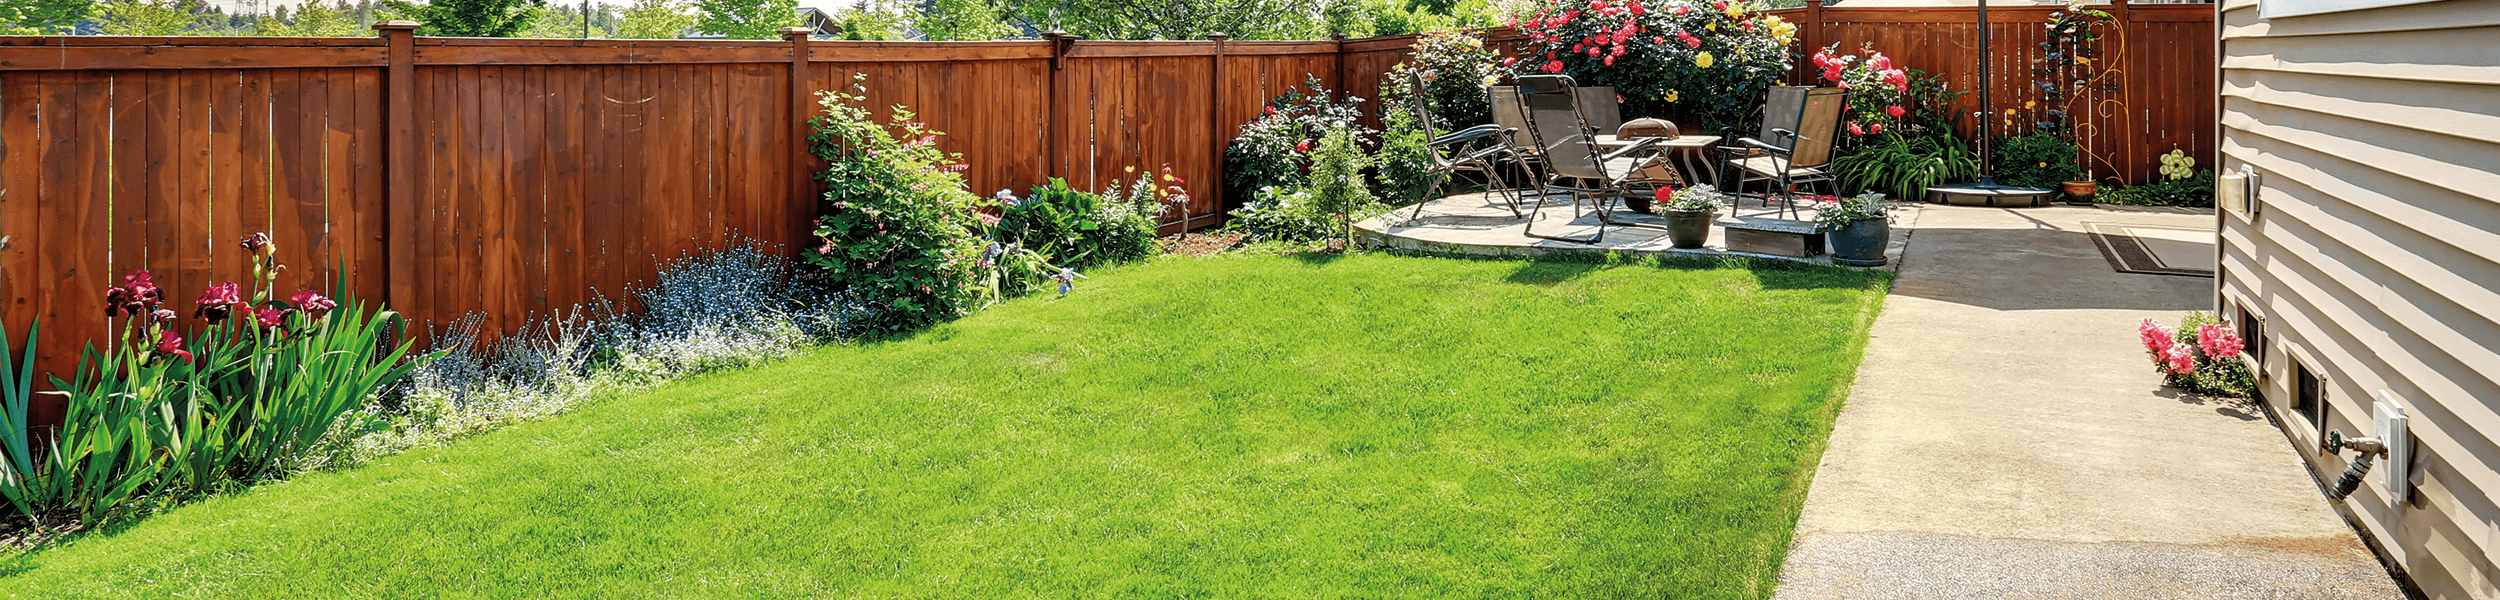 Landscaping Services | MAC Fencing | Romford, Essex ...